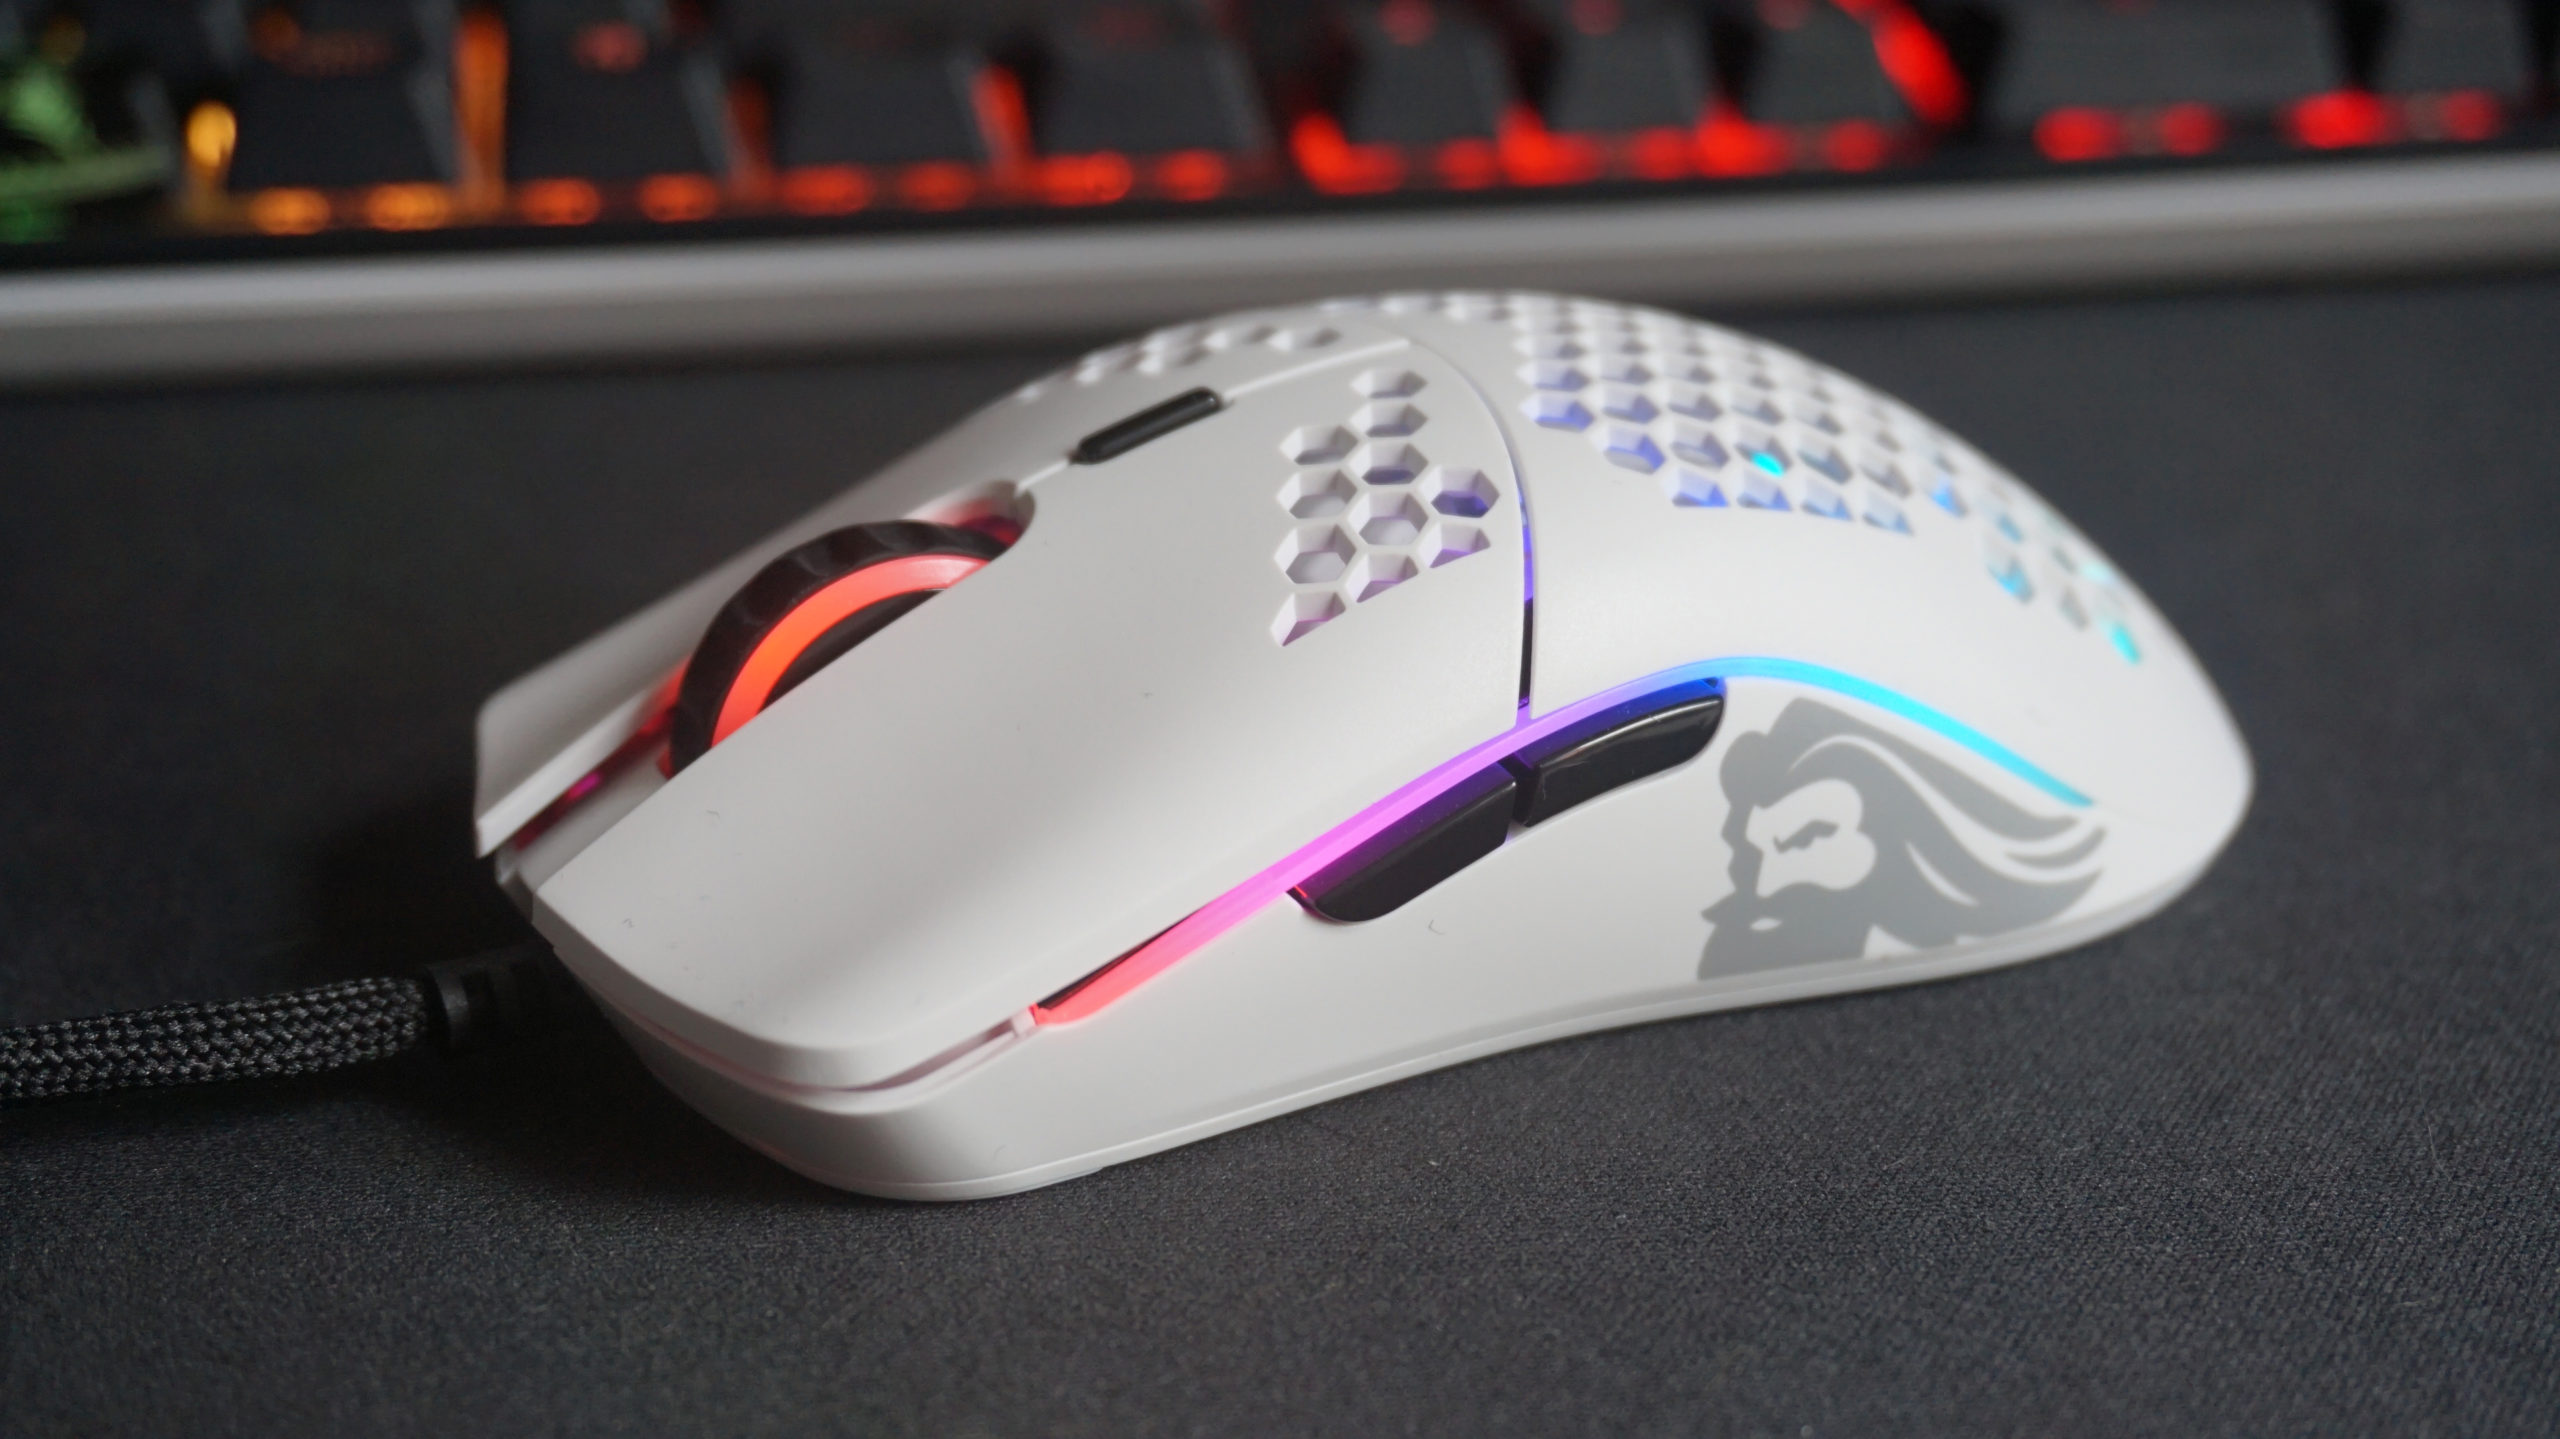 Glorious Model O: best ultralight gaming mouse